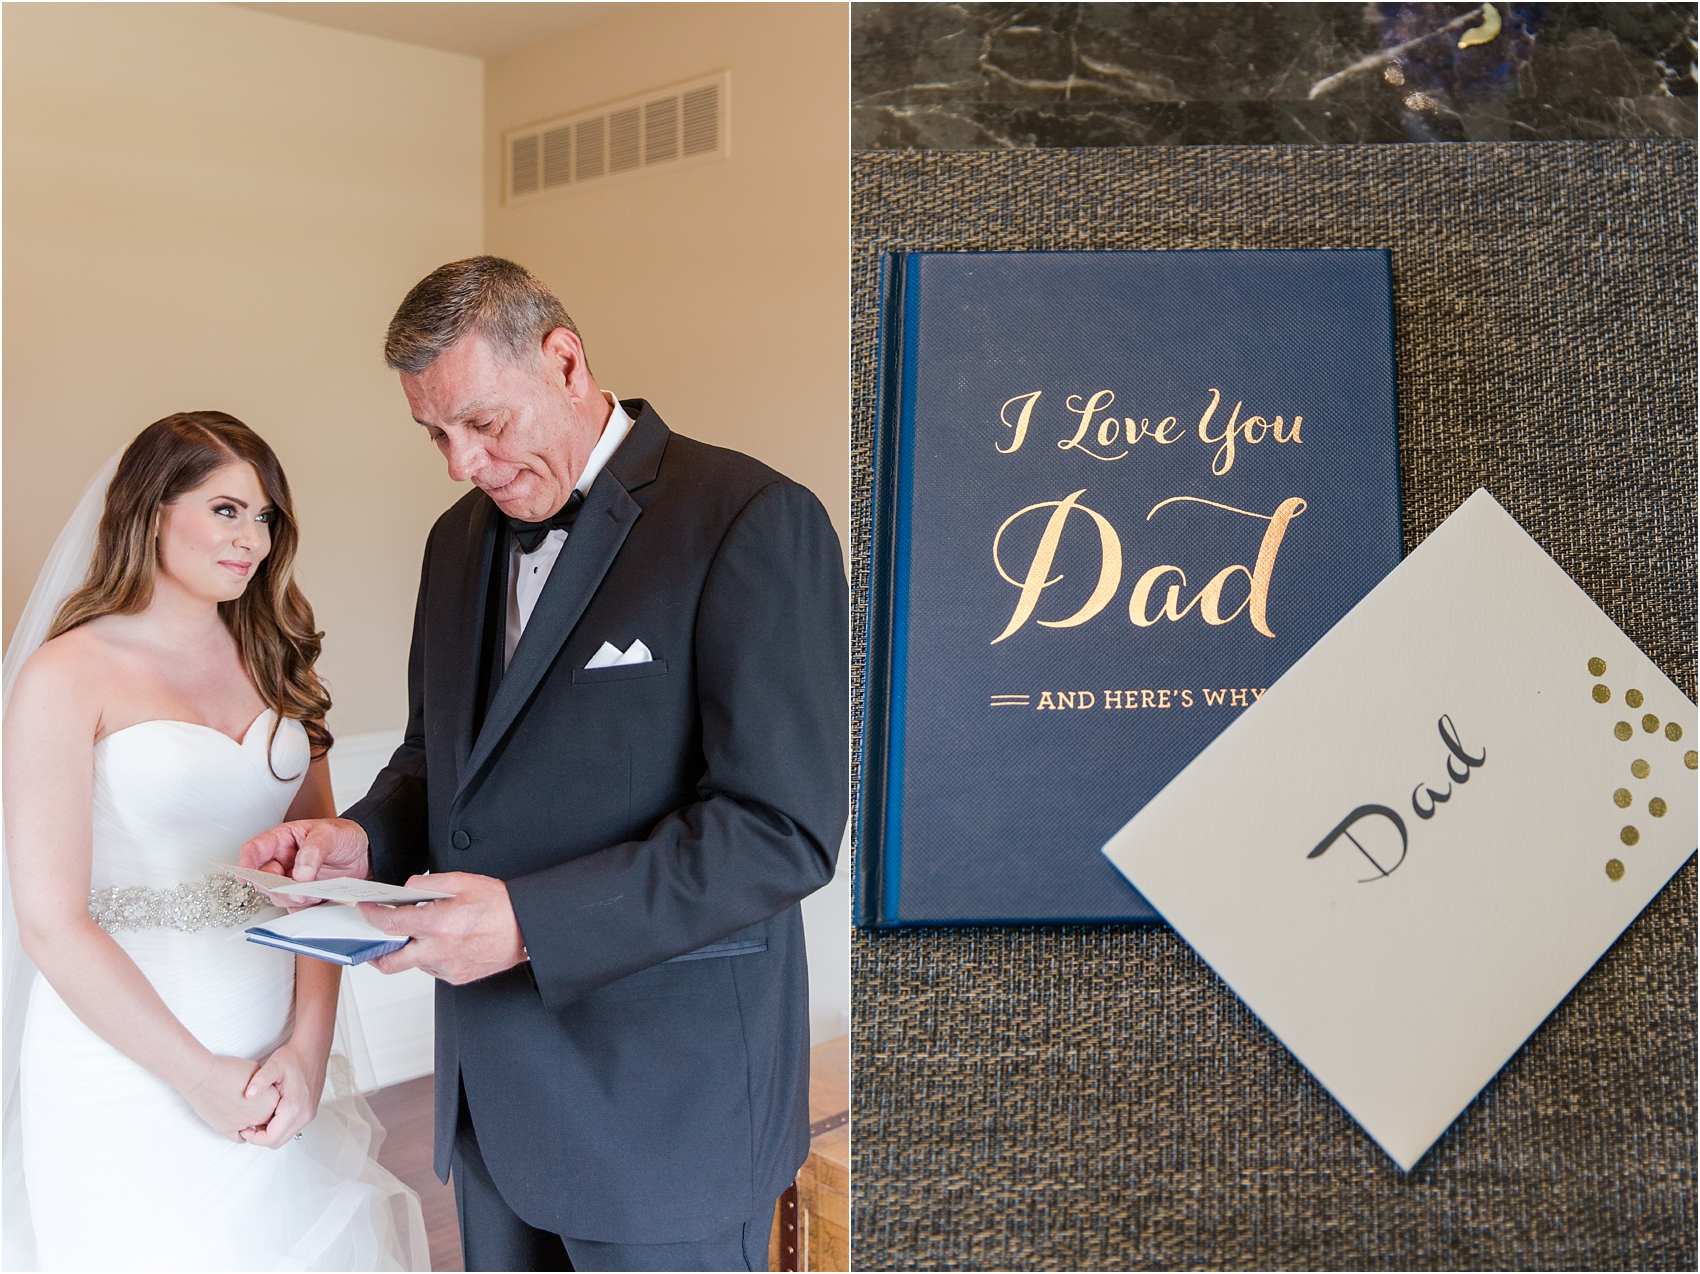 father-and-bride-share-emotional-first-look-on-wedding-day-photos-in-detroit-michigan-by-courtney-carolyn-photography_0020.jpg